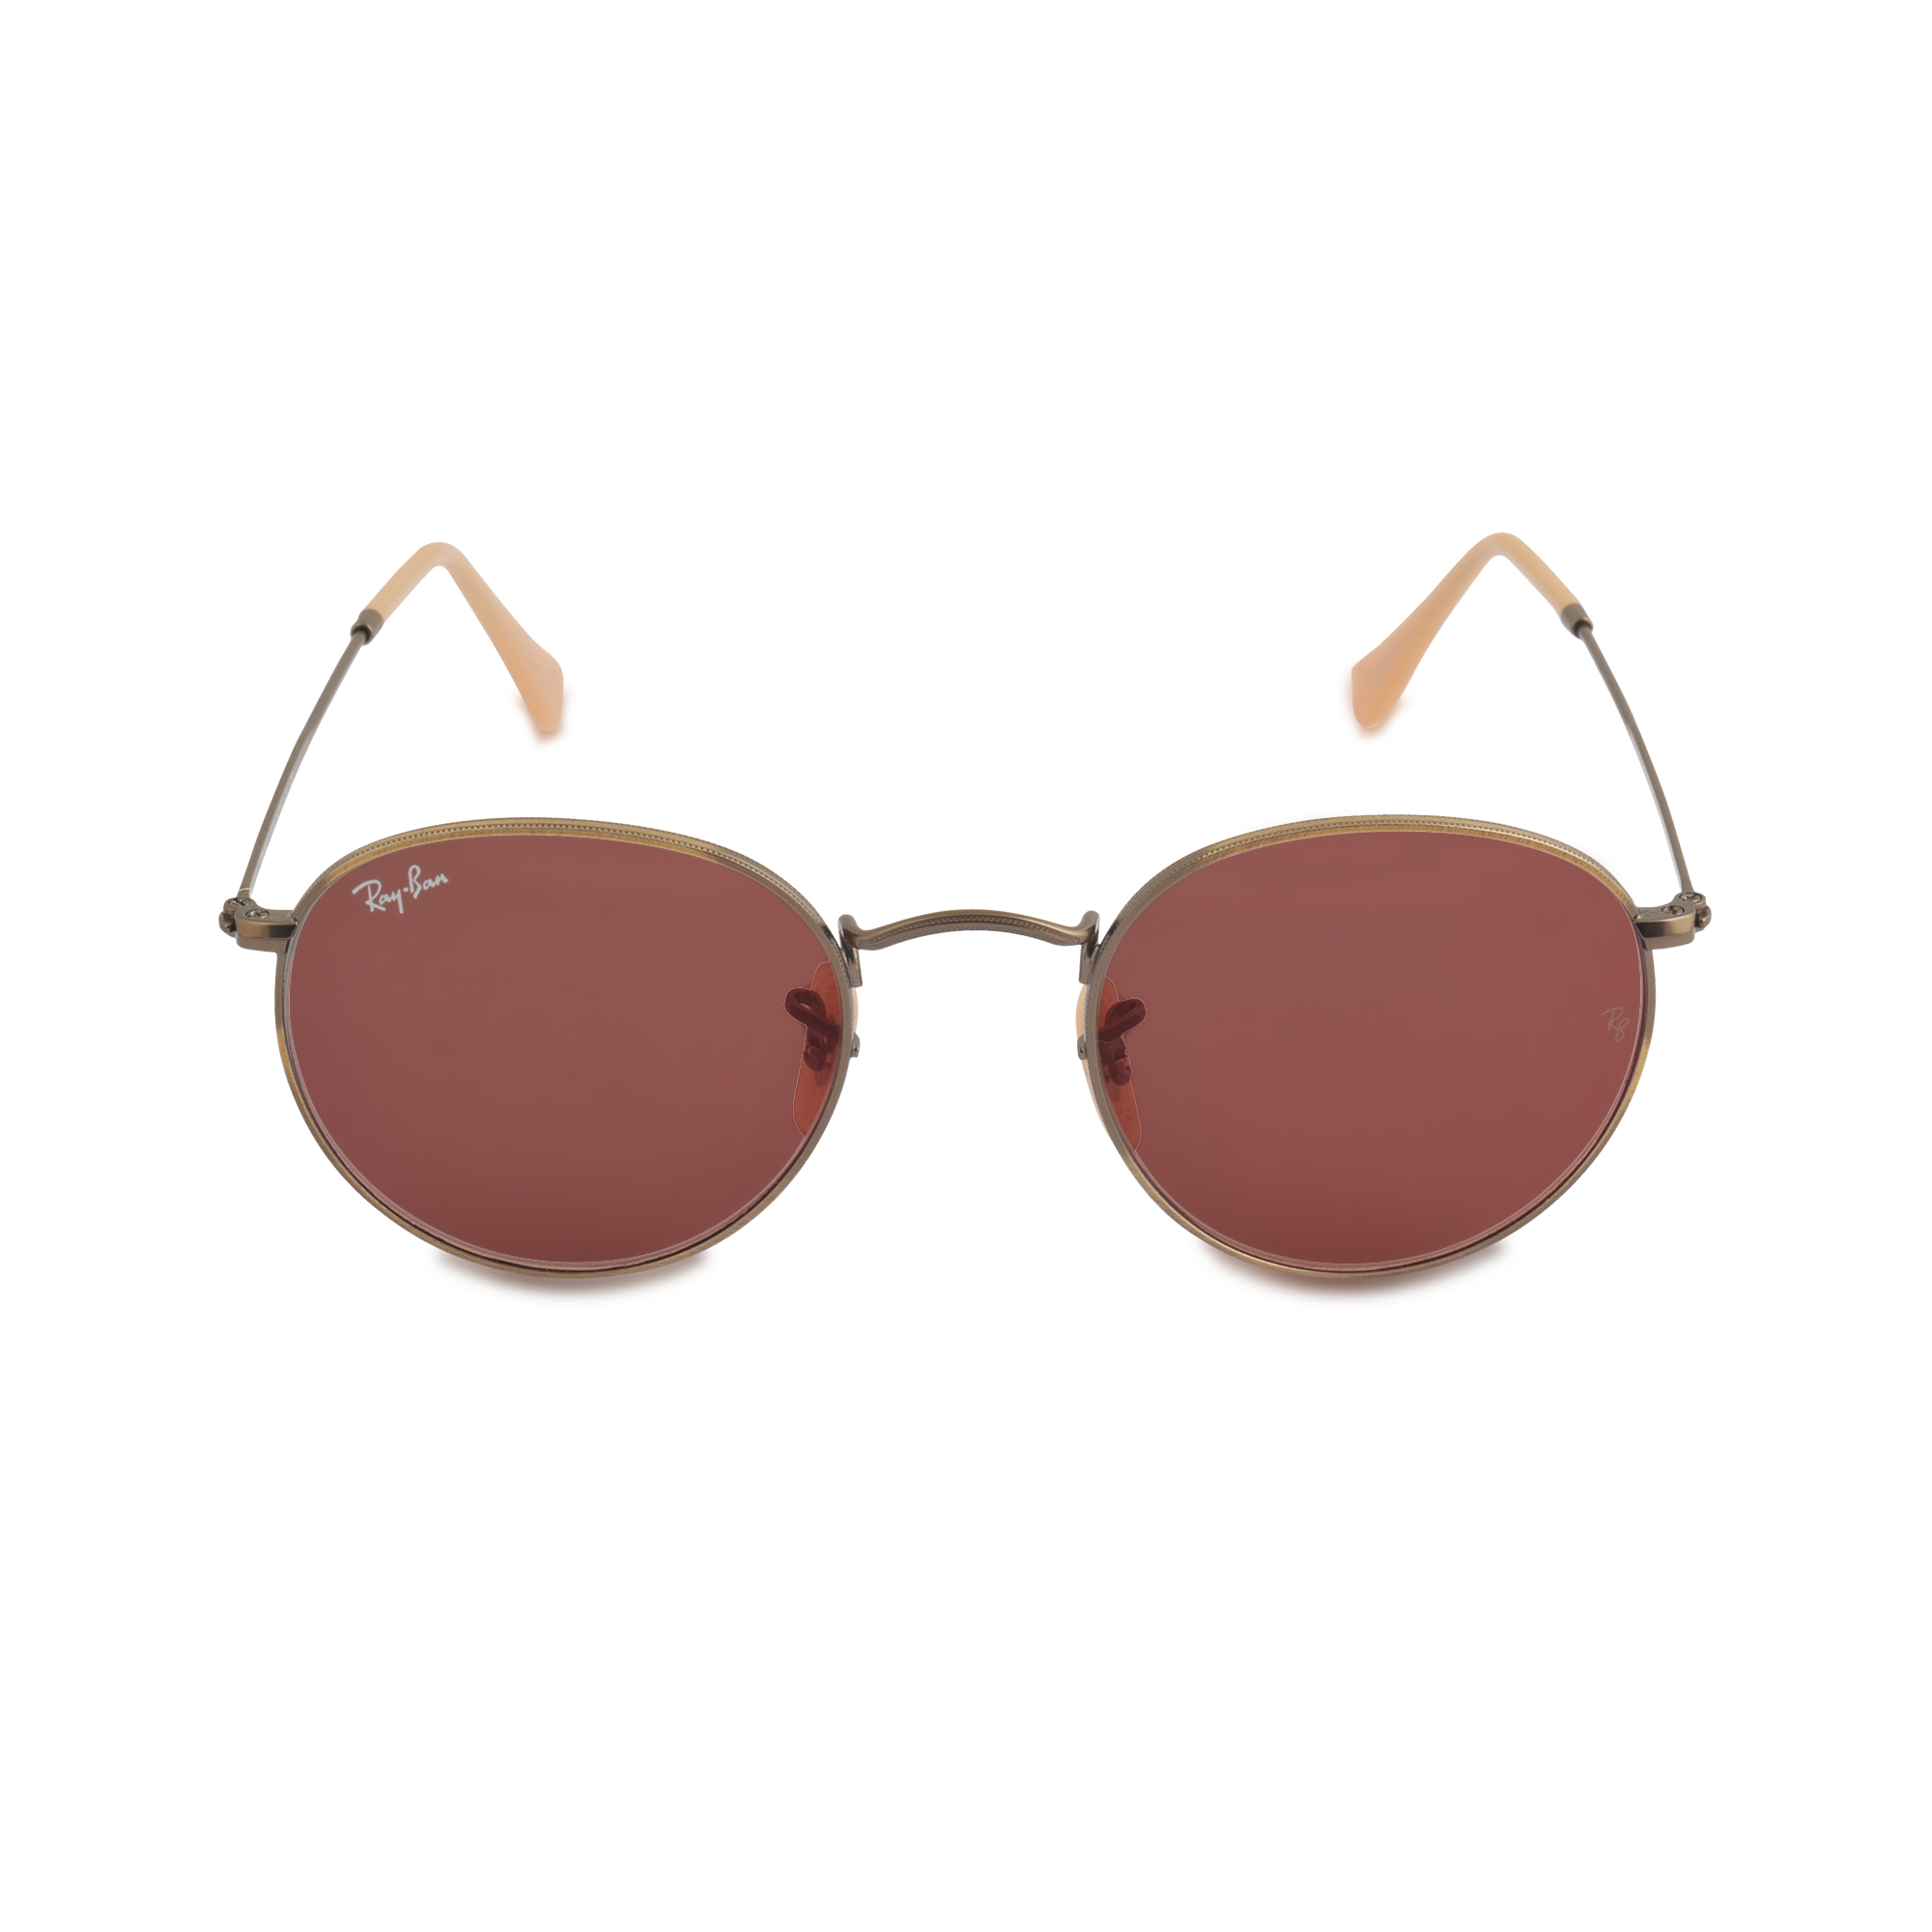 ray ban icons 0rb3447 round metal demiglos brushed bronze sunglasses in brown lyst. Black Bedroom Furniture Sets. Home Design Ideas